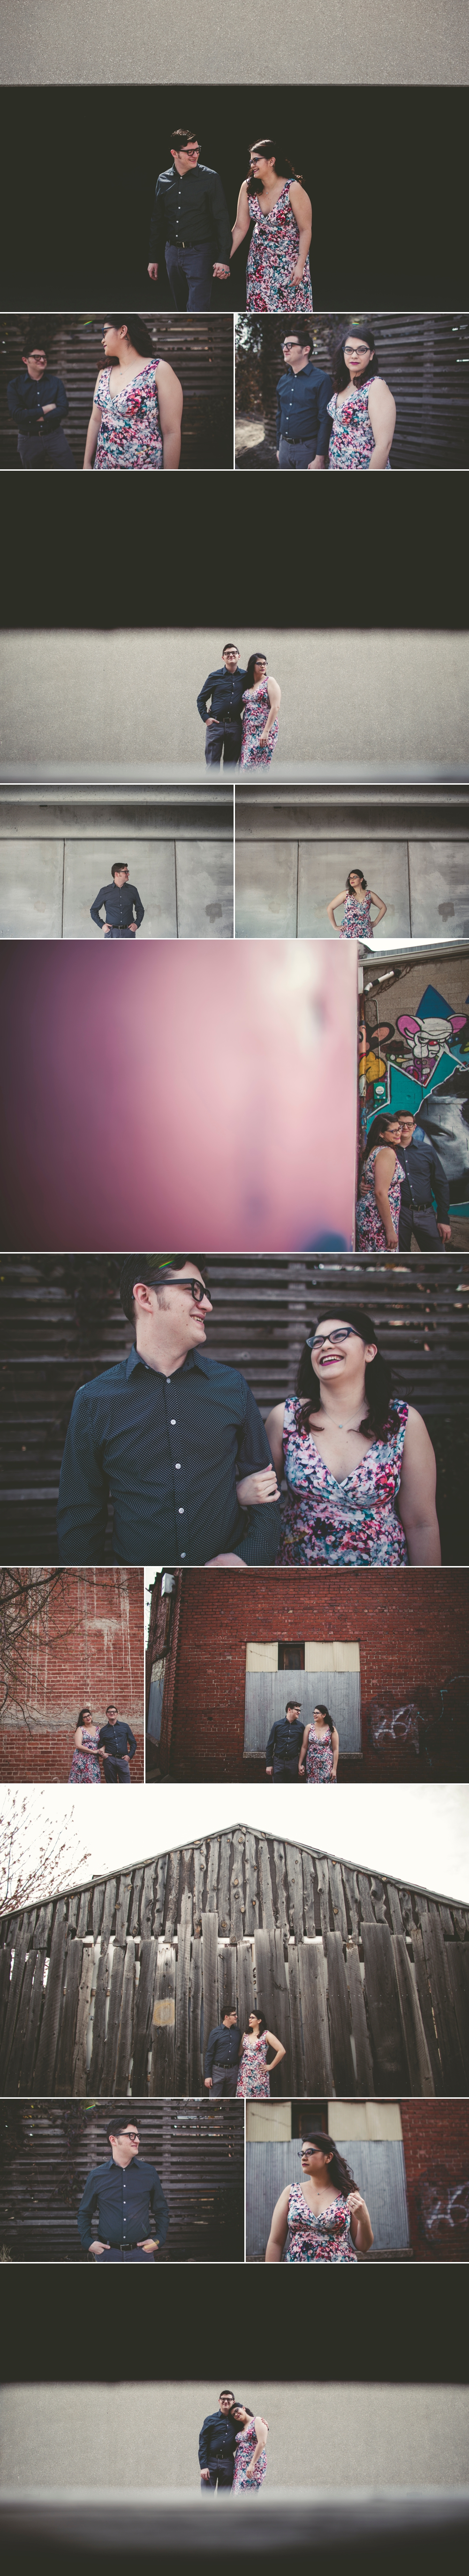 jason_domingues_photography_best_kansas_city_wedding_photographer_engagement_session_downtown_kc.jpg